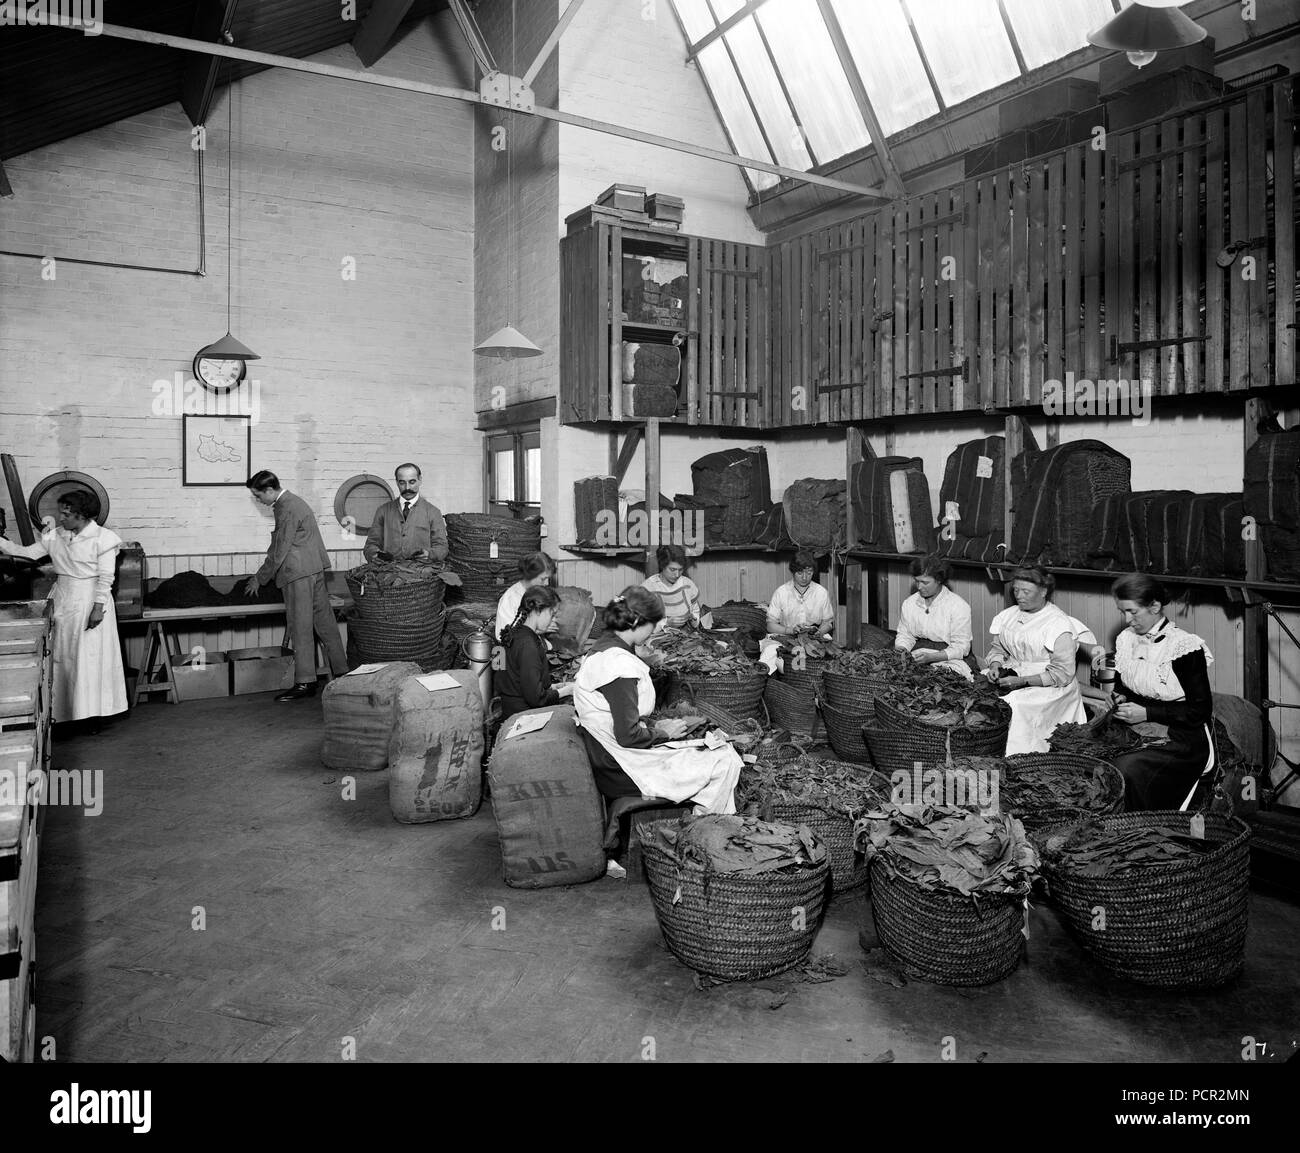 Tobacco leaf-picking in the Turkish leaf room, Teafani & Co Works, Brixton, London, 1916. Cigarettes and tobacco were regarded as vital war supplies and these women workers are contributing to the war effort by leaf-picking. - Stock Image